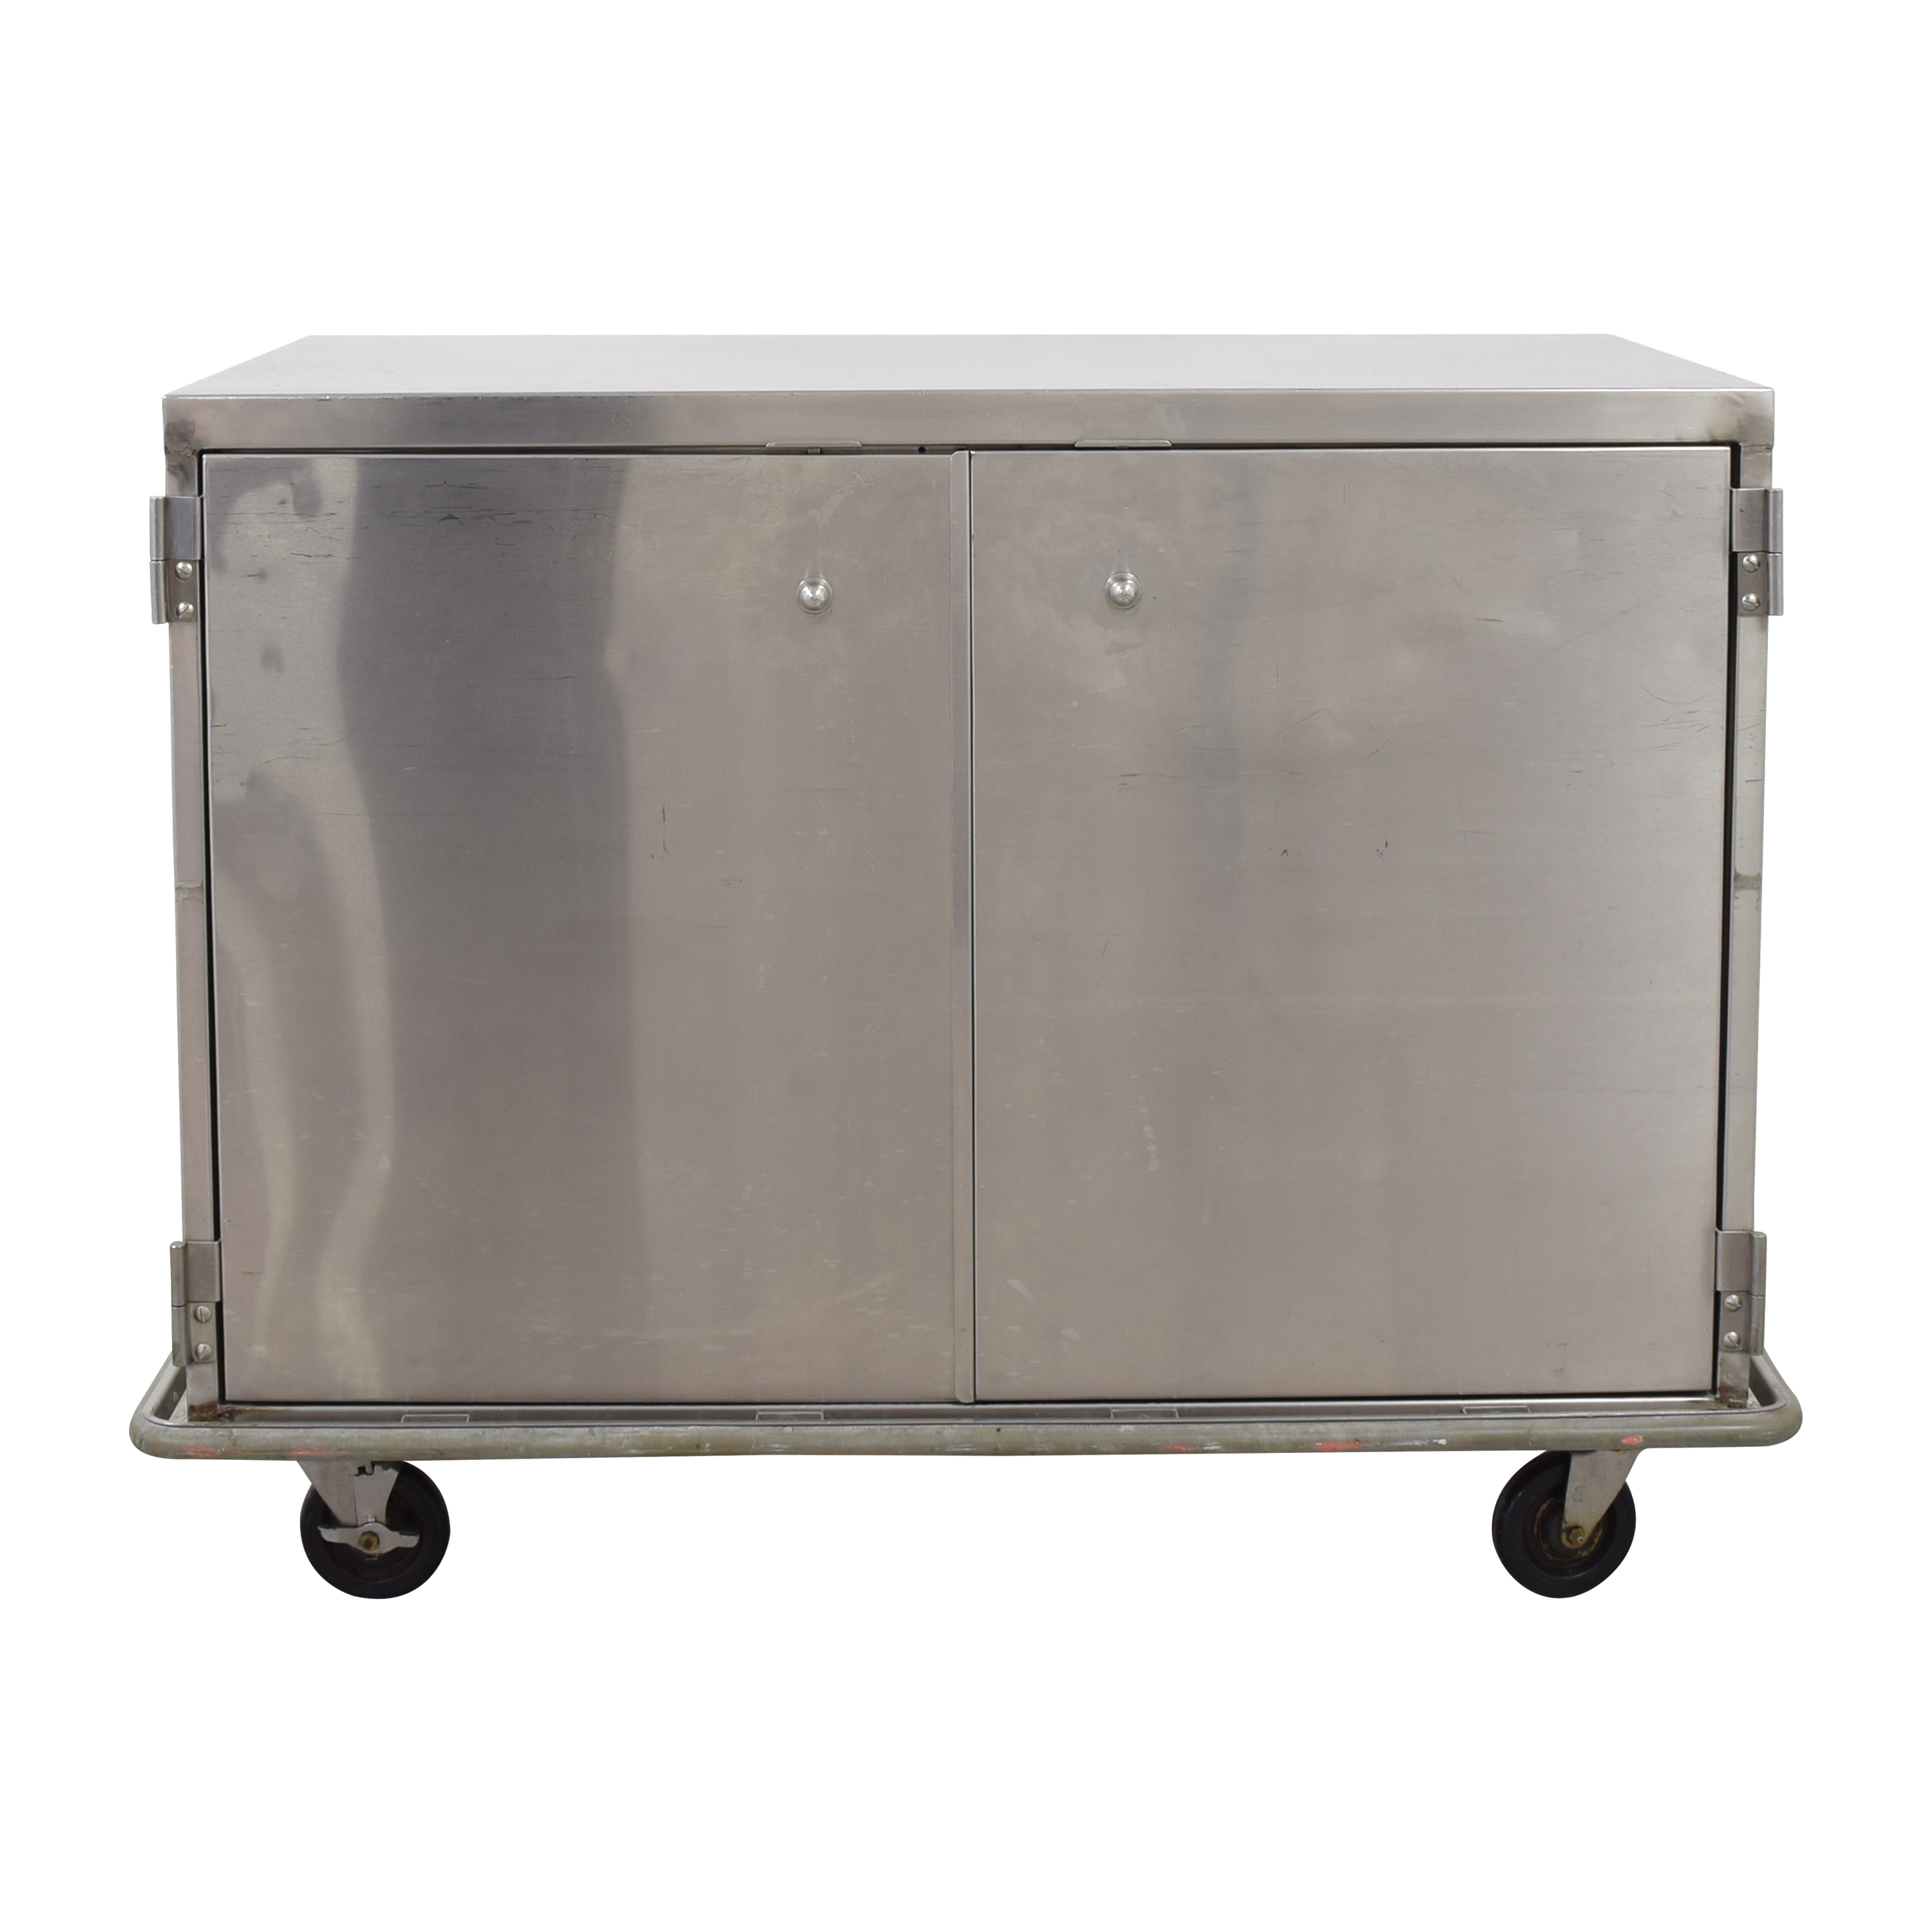 Suburban Surgical Double Door Cabinet for sale